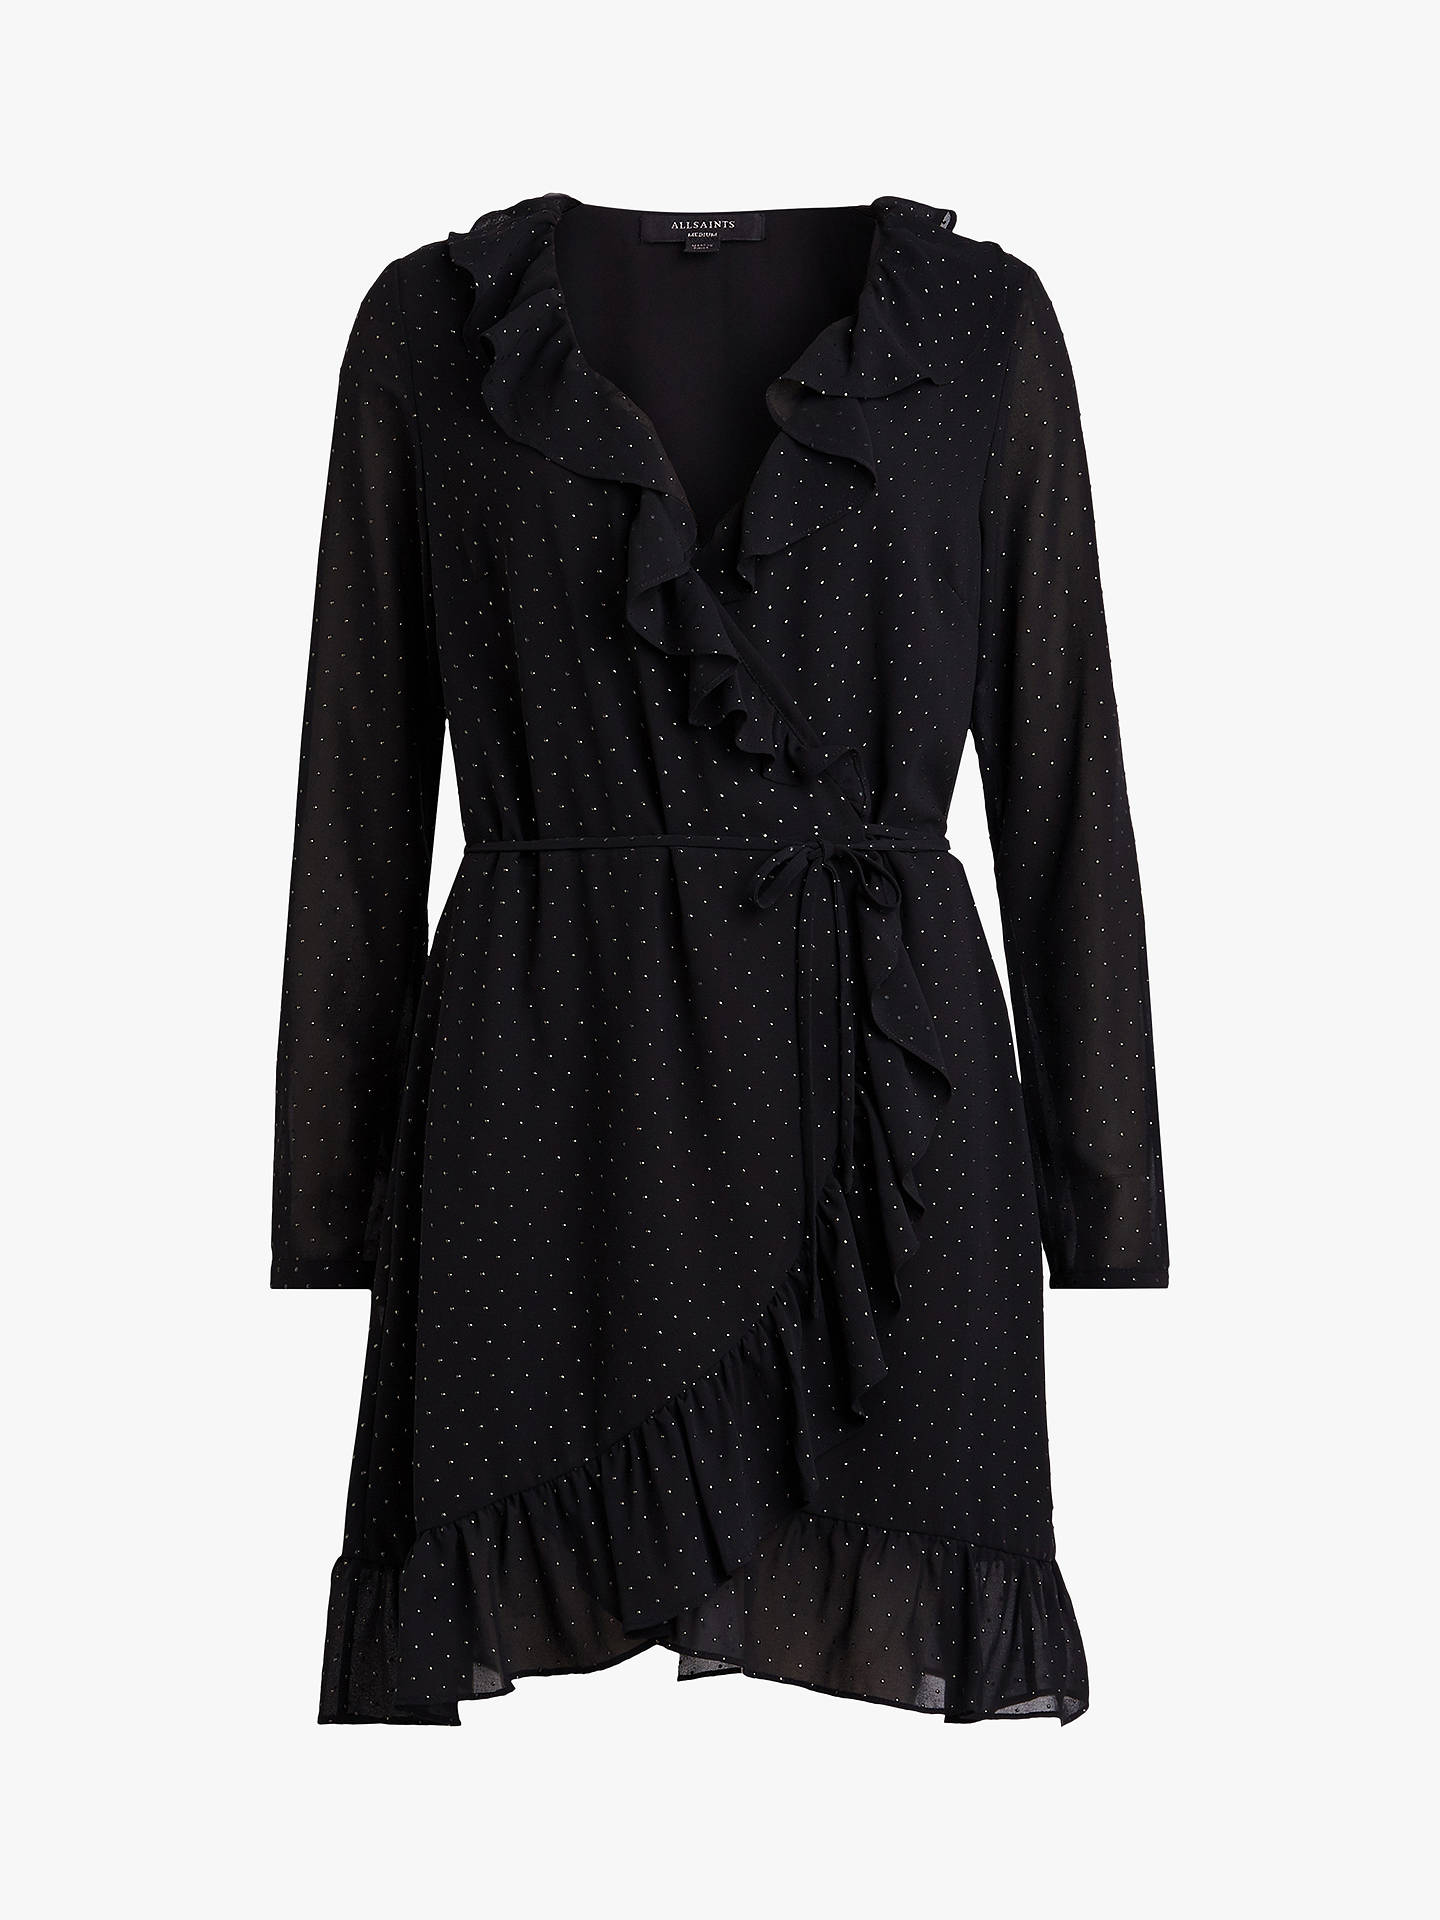 BuyAllSaints Kiya Shimmer Dress, Black, S Online at johnlewis.com